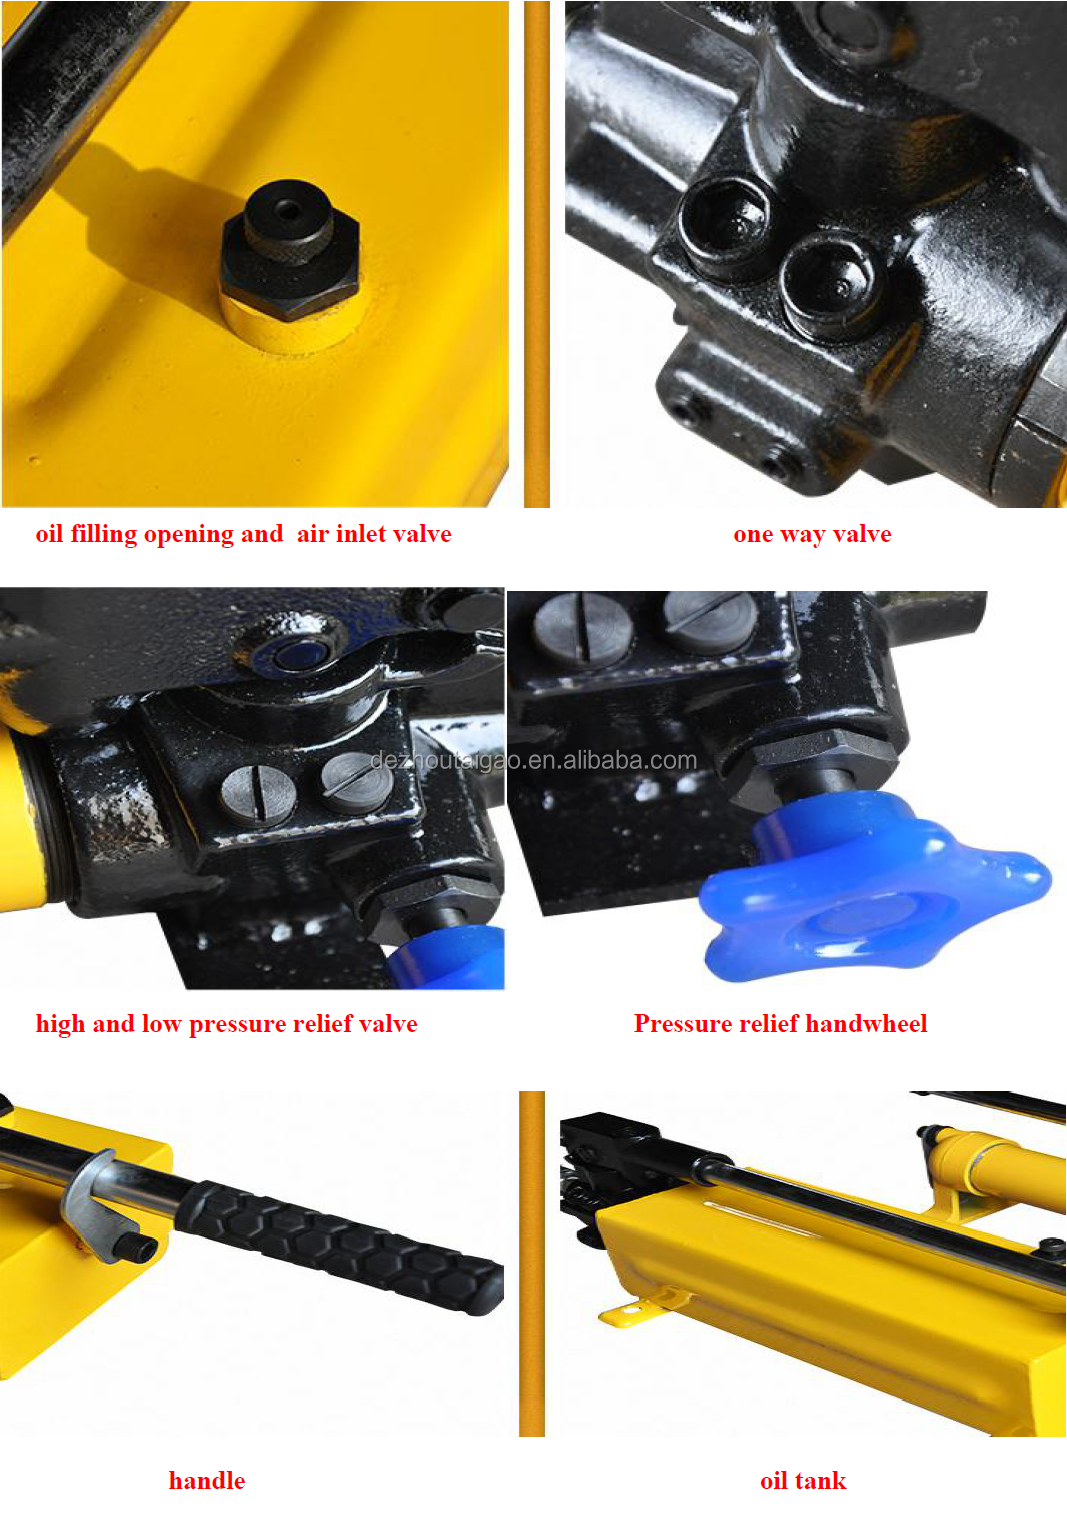 Hot selling hydraulic manual hand pump ,hydraulic oil hand pump, hand hydraulic Pump